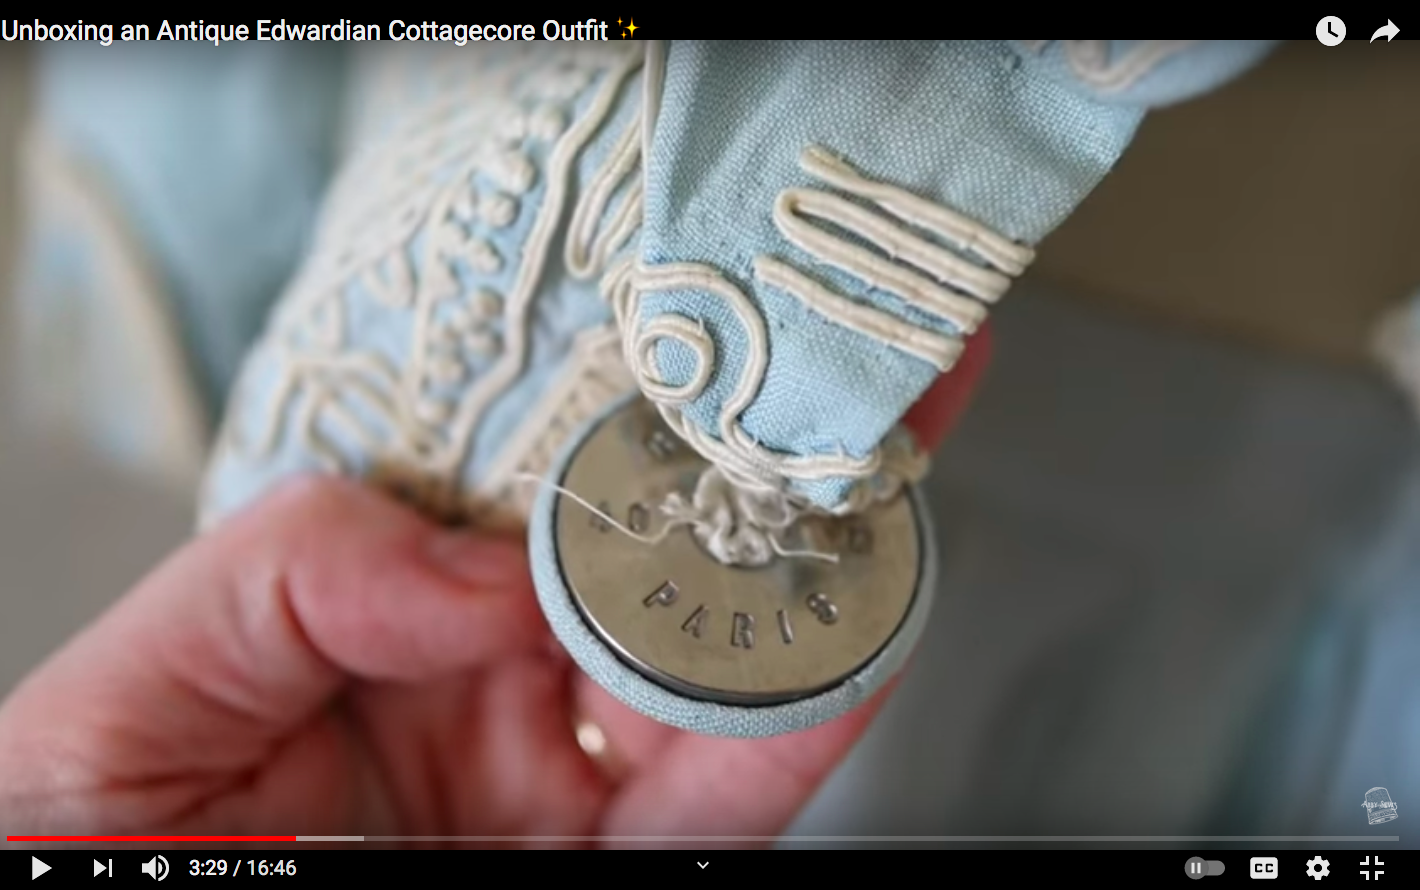 YouTube still of a metal button inscribed with the term 'Paris' on an Edwardian outfit